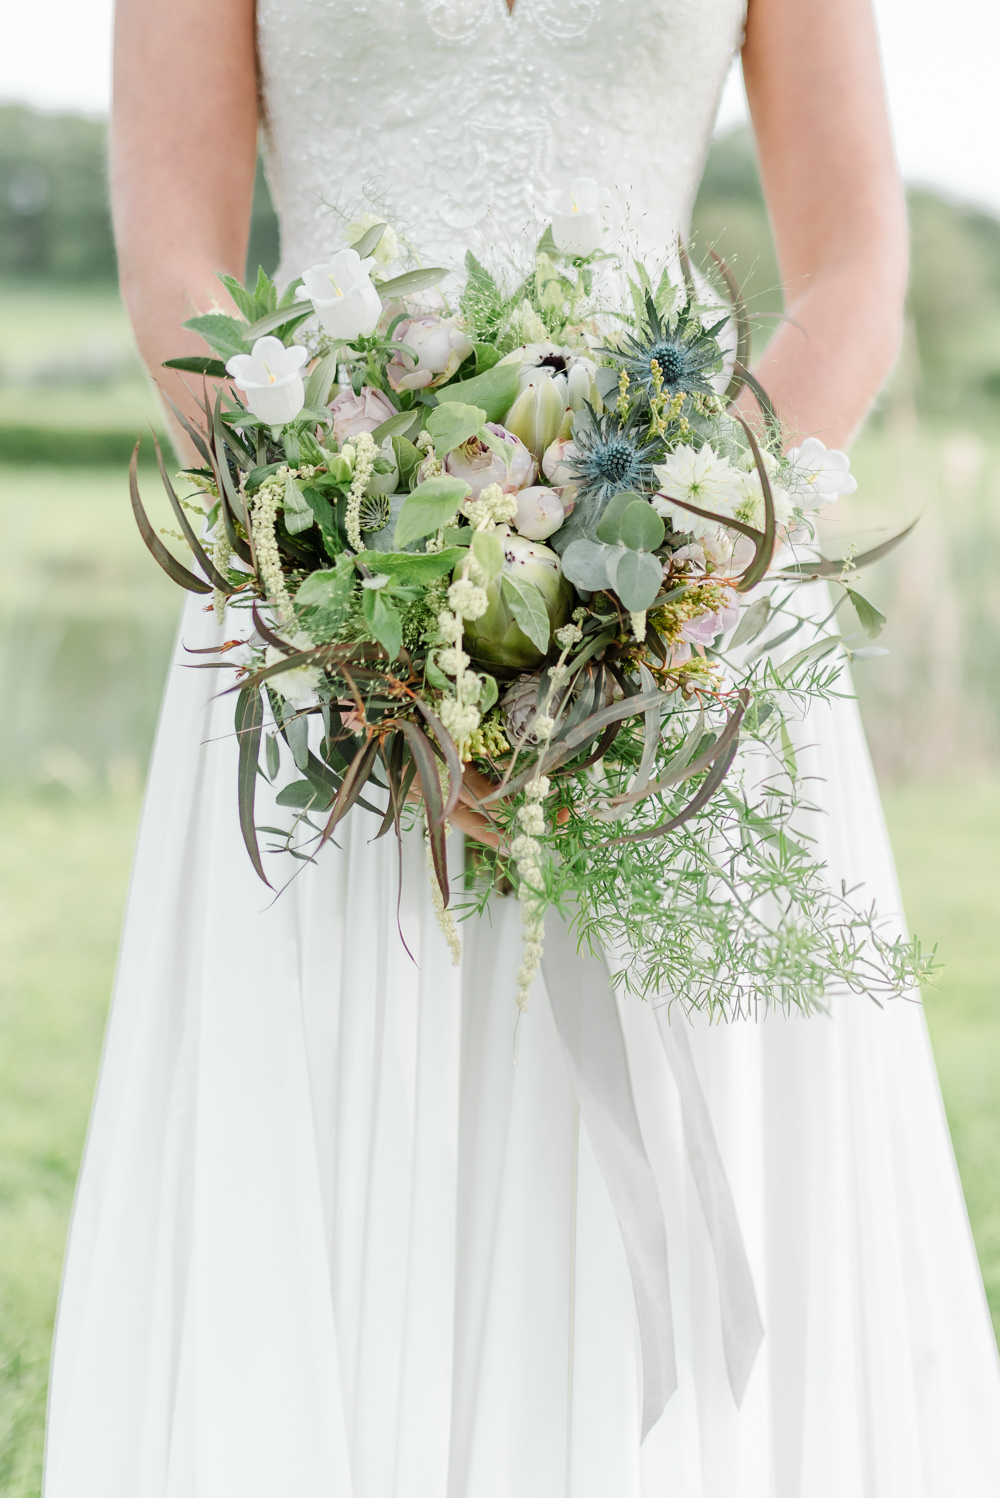 Bouquet Flowers Bride Bridal Thistle Peony Pink Peonies Protea Greenery Foliage Grey Violet Wedding Ideas Chloe Ely Photography